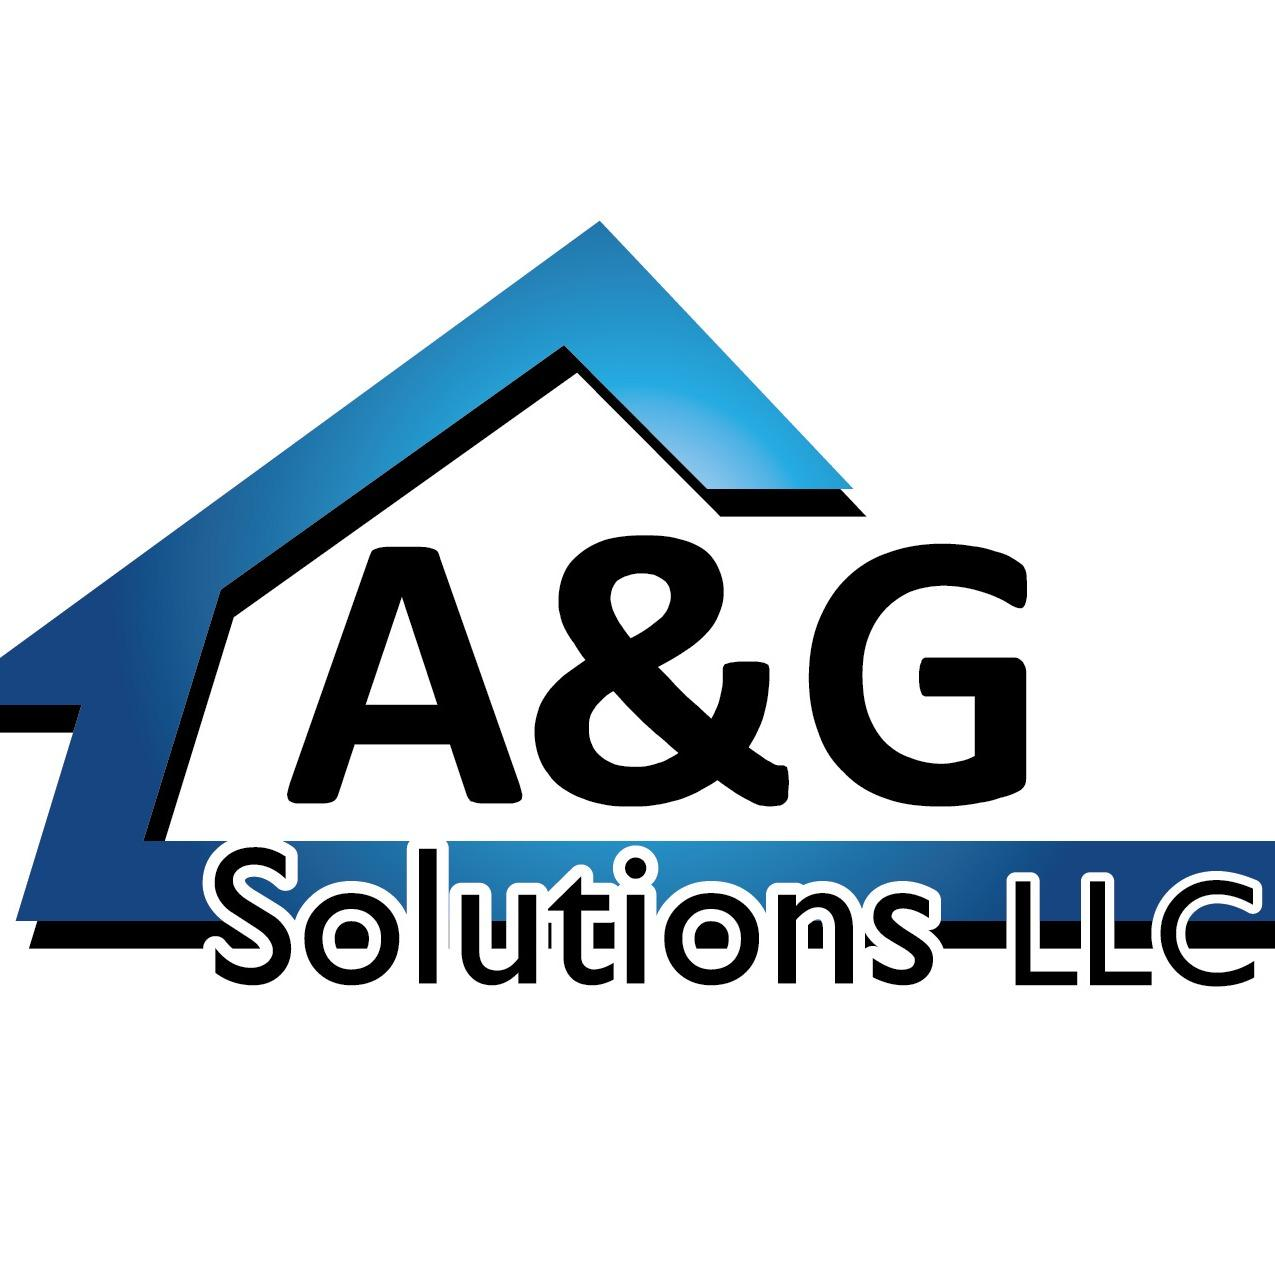 A&G Solutions LLC image 10